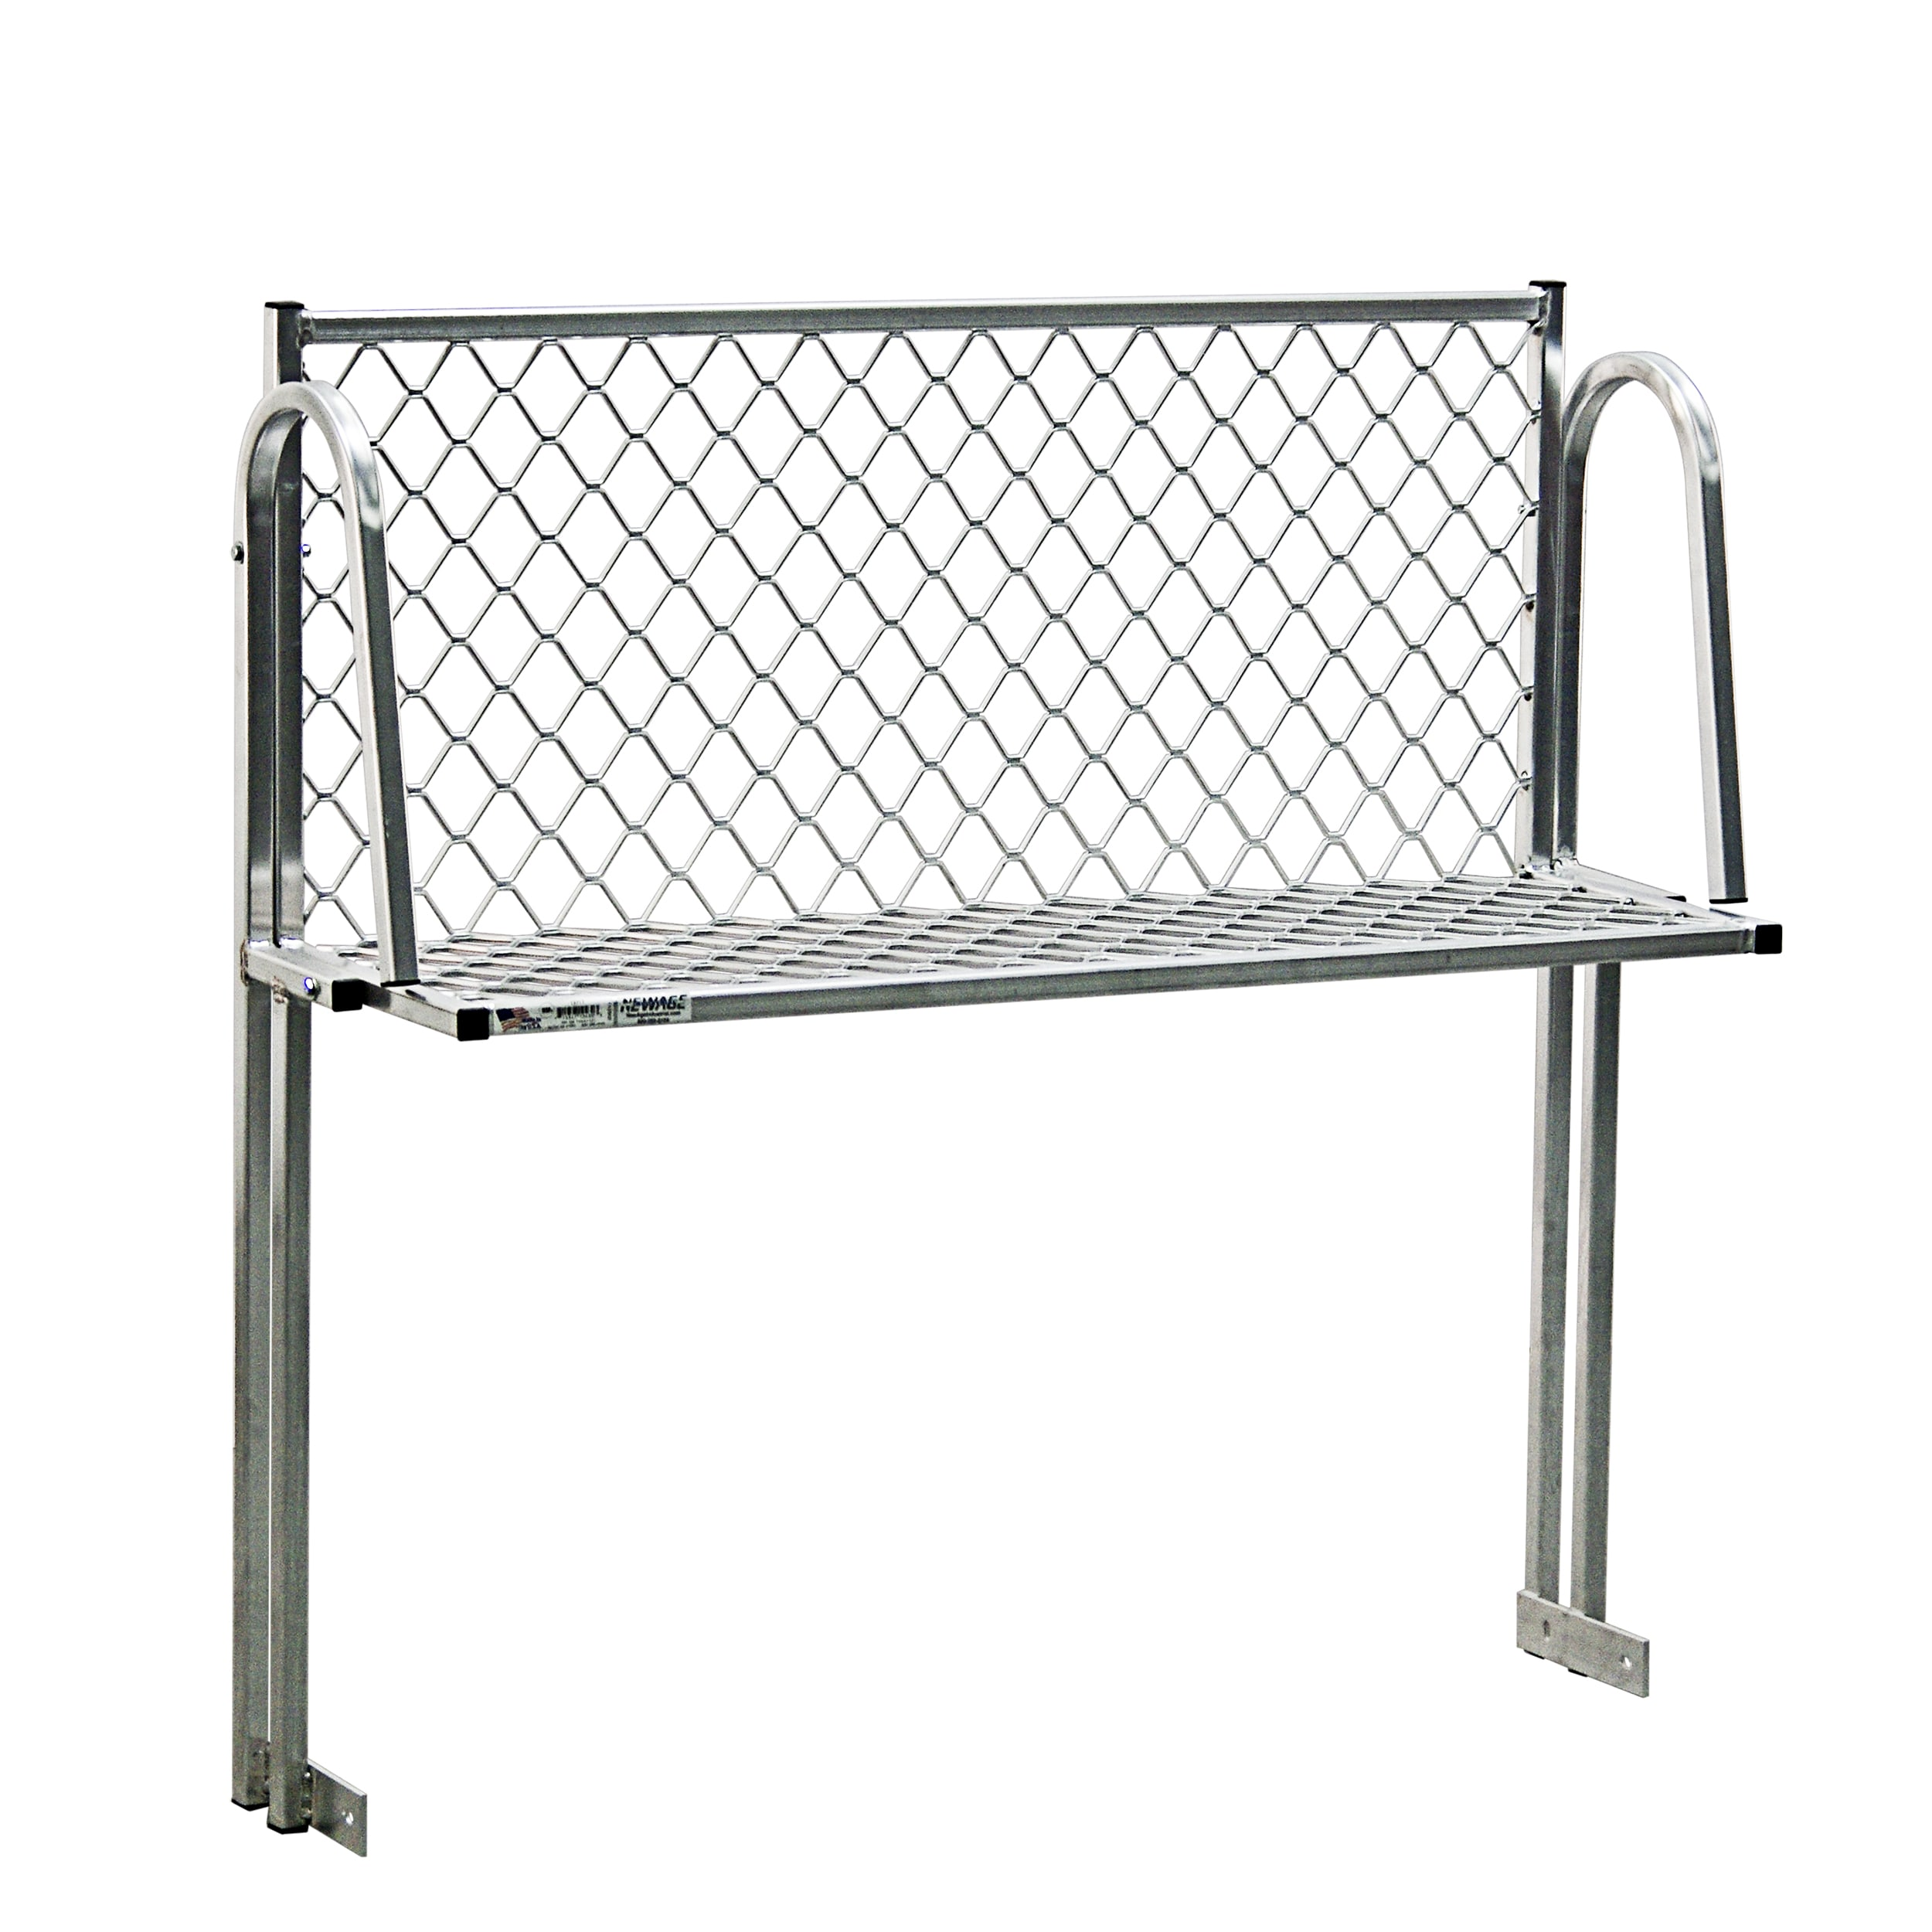 """New Age 1371T Table Mount Boat Rack w/ Mounting Brackets & Hardware, 48x15"""", Aluminum"""